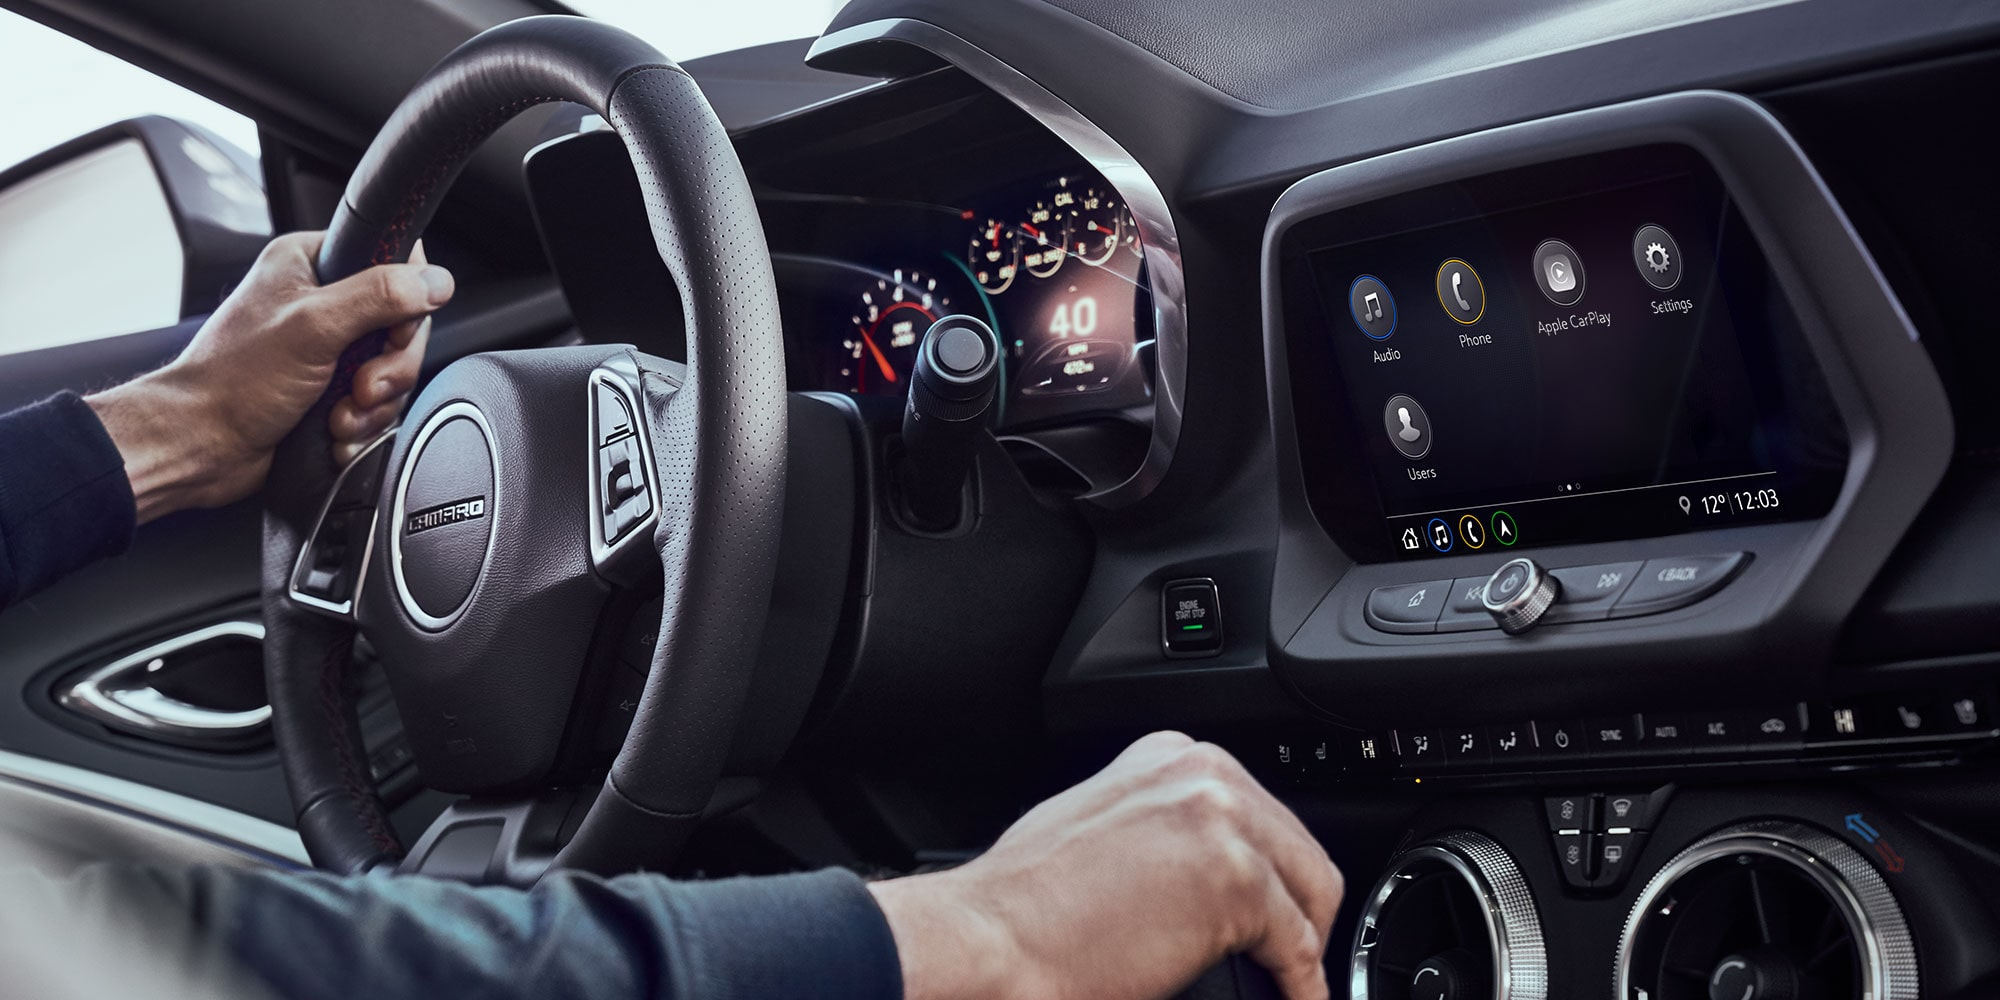 The Ingenious Camaro HVAC Dials Let Drivers Control Airflow With A Simple  Trim Ring Rotation.